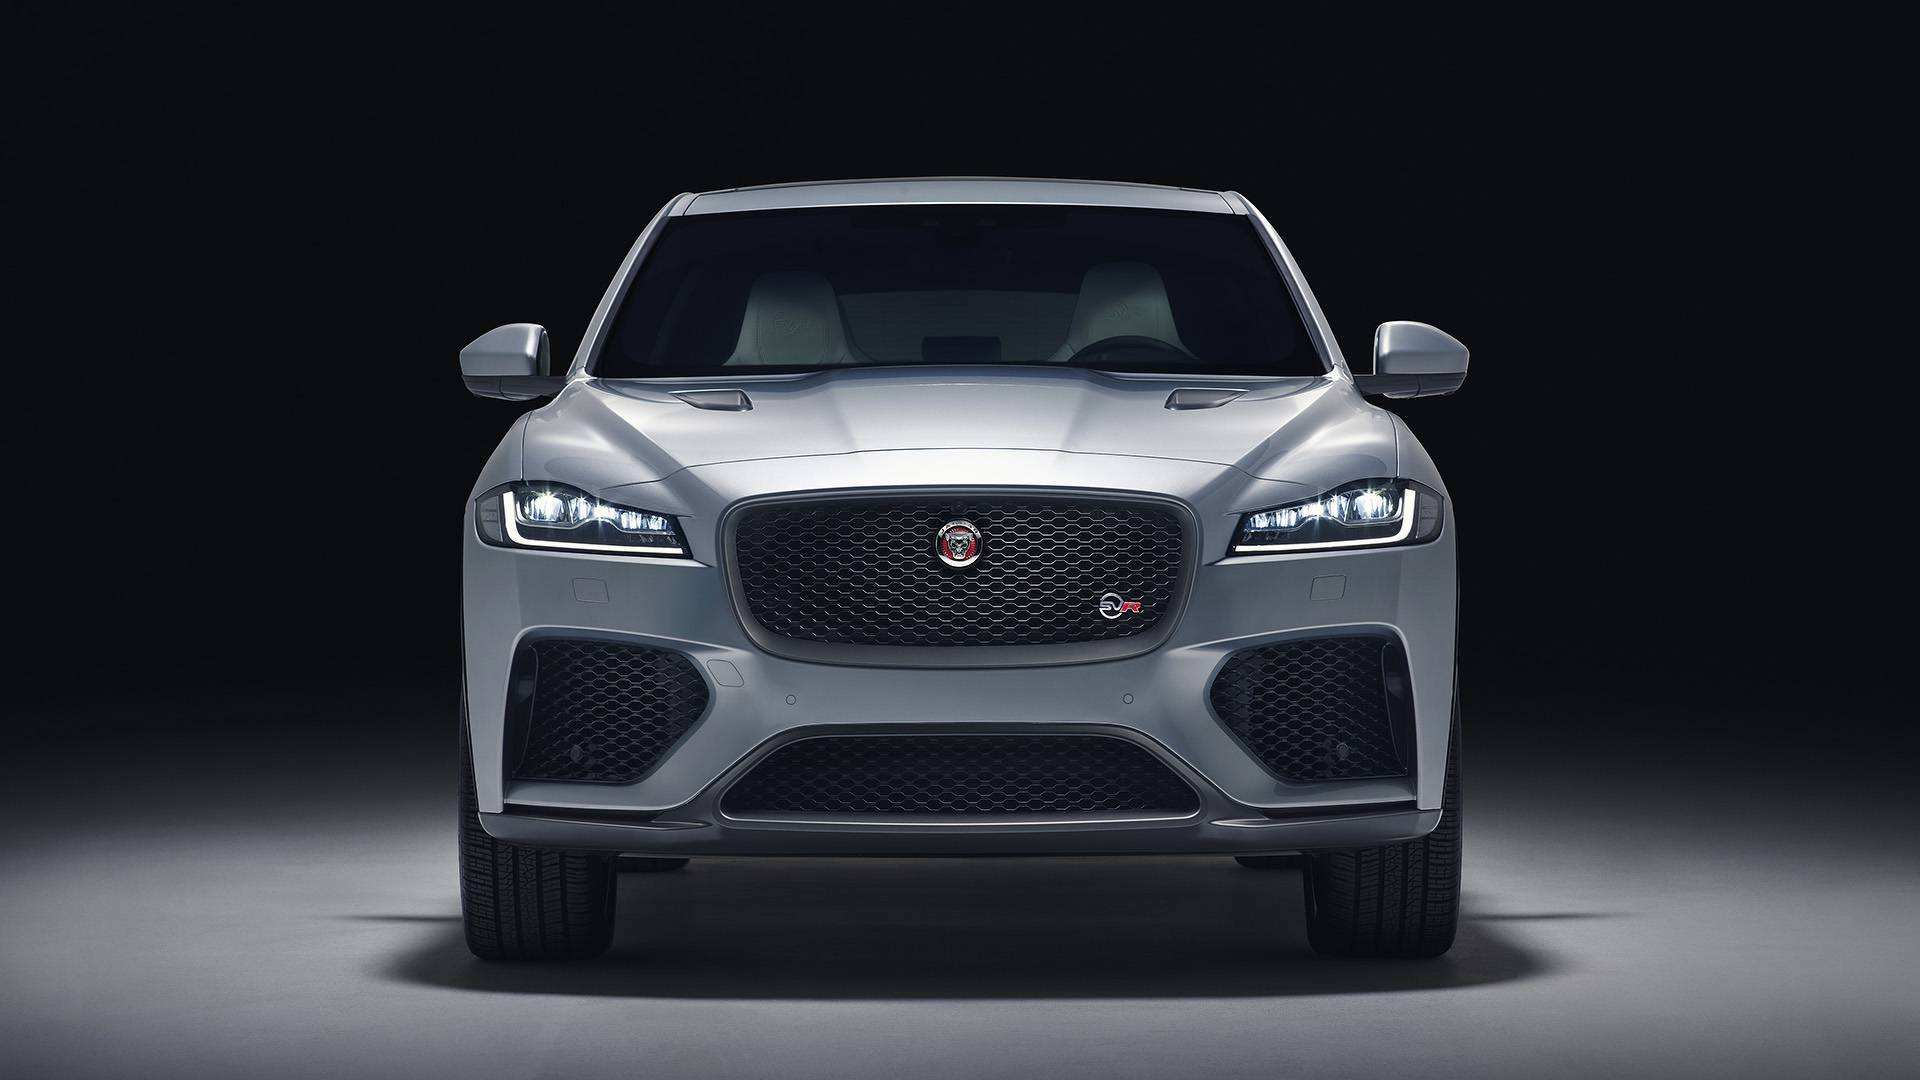 76 Great 2020 Jaguar F Pace New Concept Research New For 2020 Jaguar F Pace New Concept Car Review Car Review